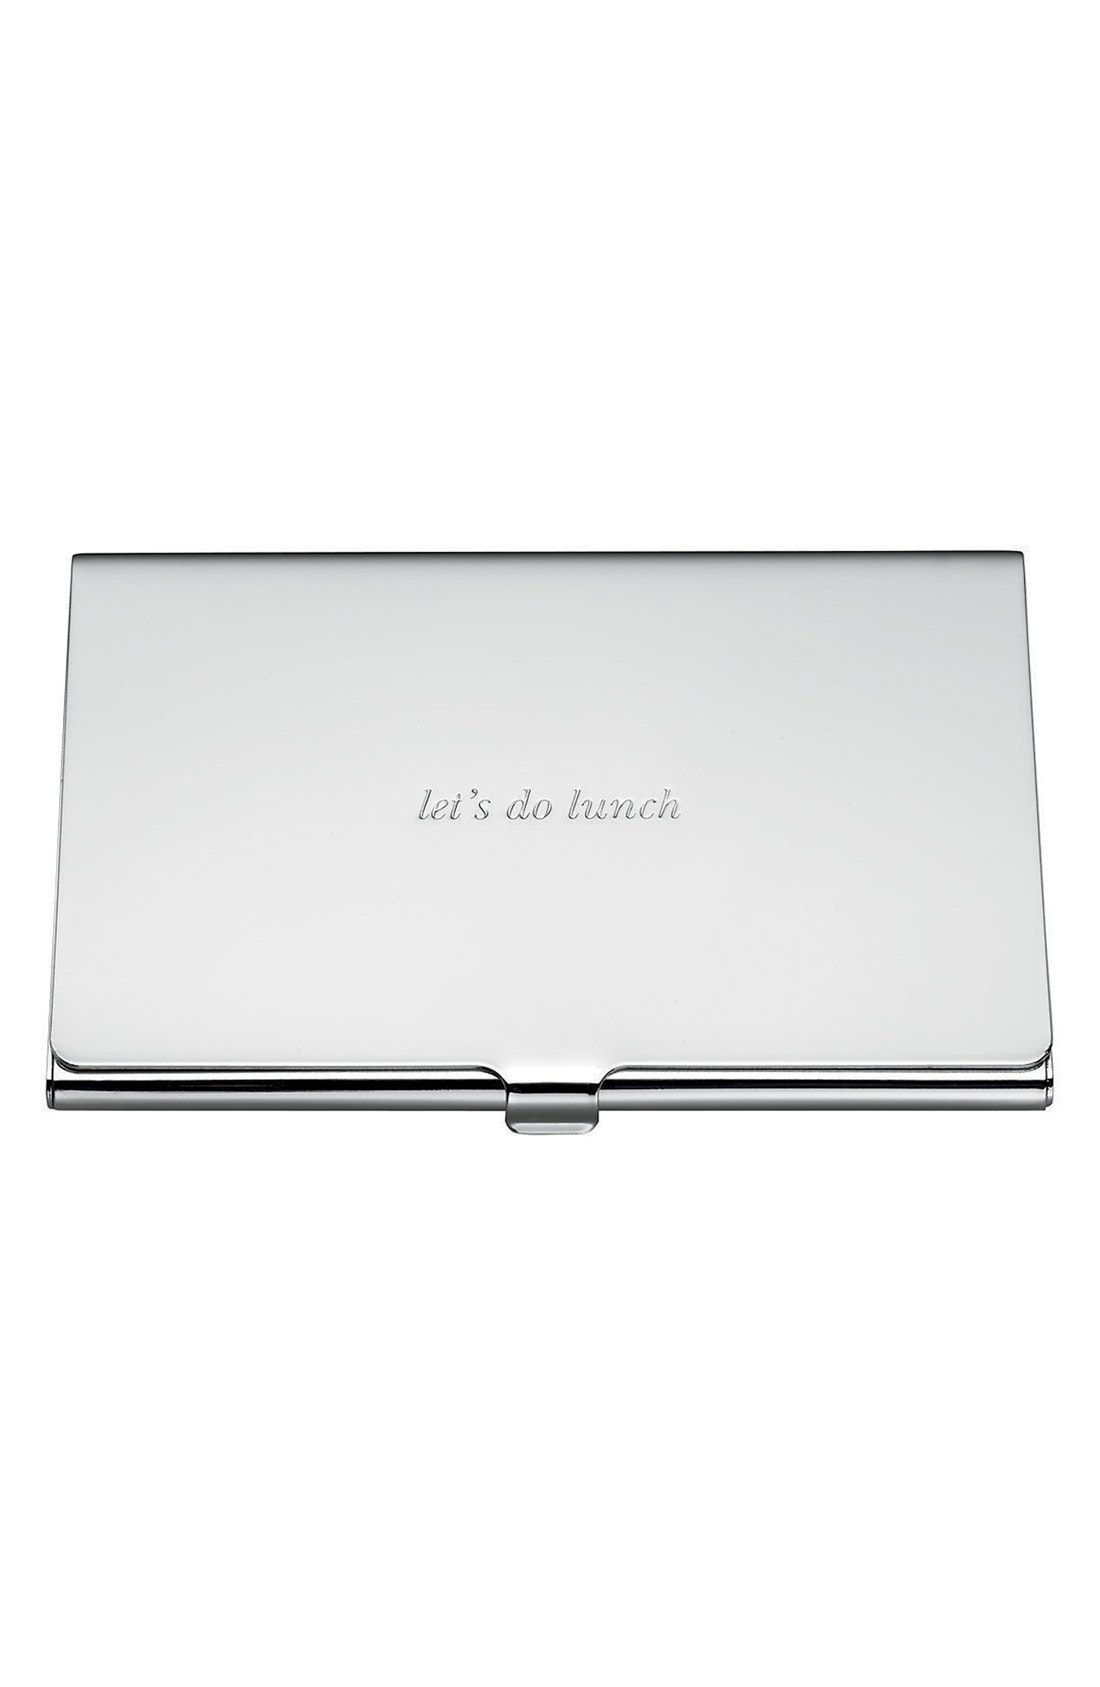 New kate spade new york let s do lunch business card holder ...